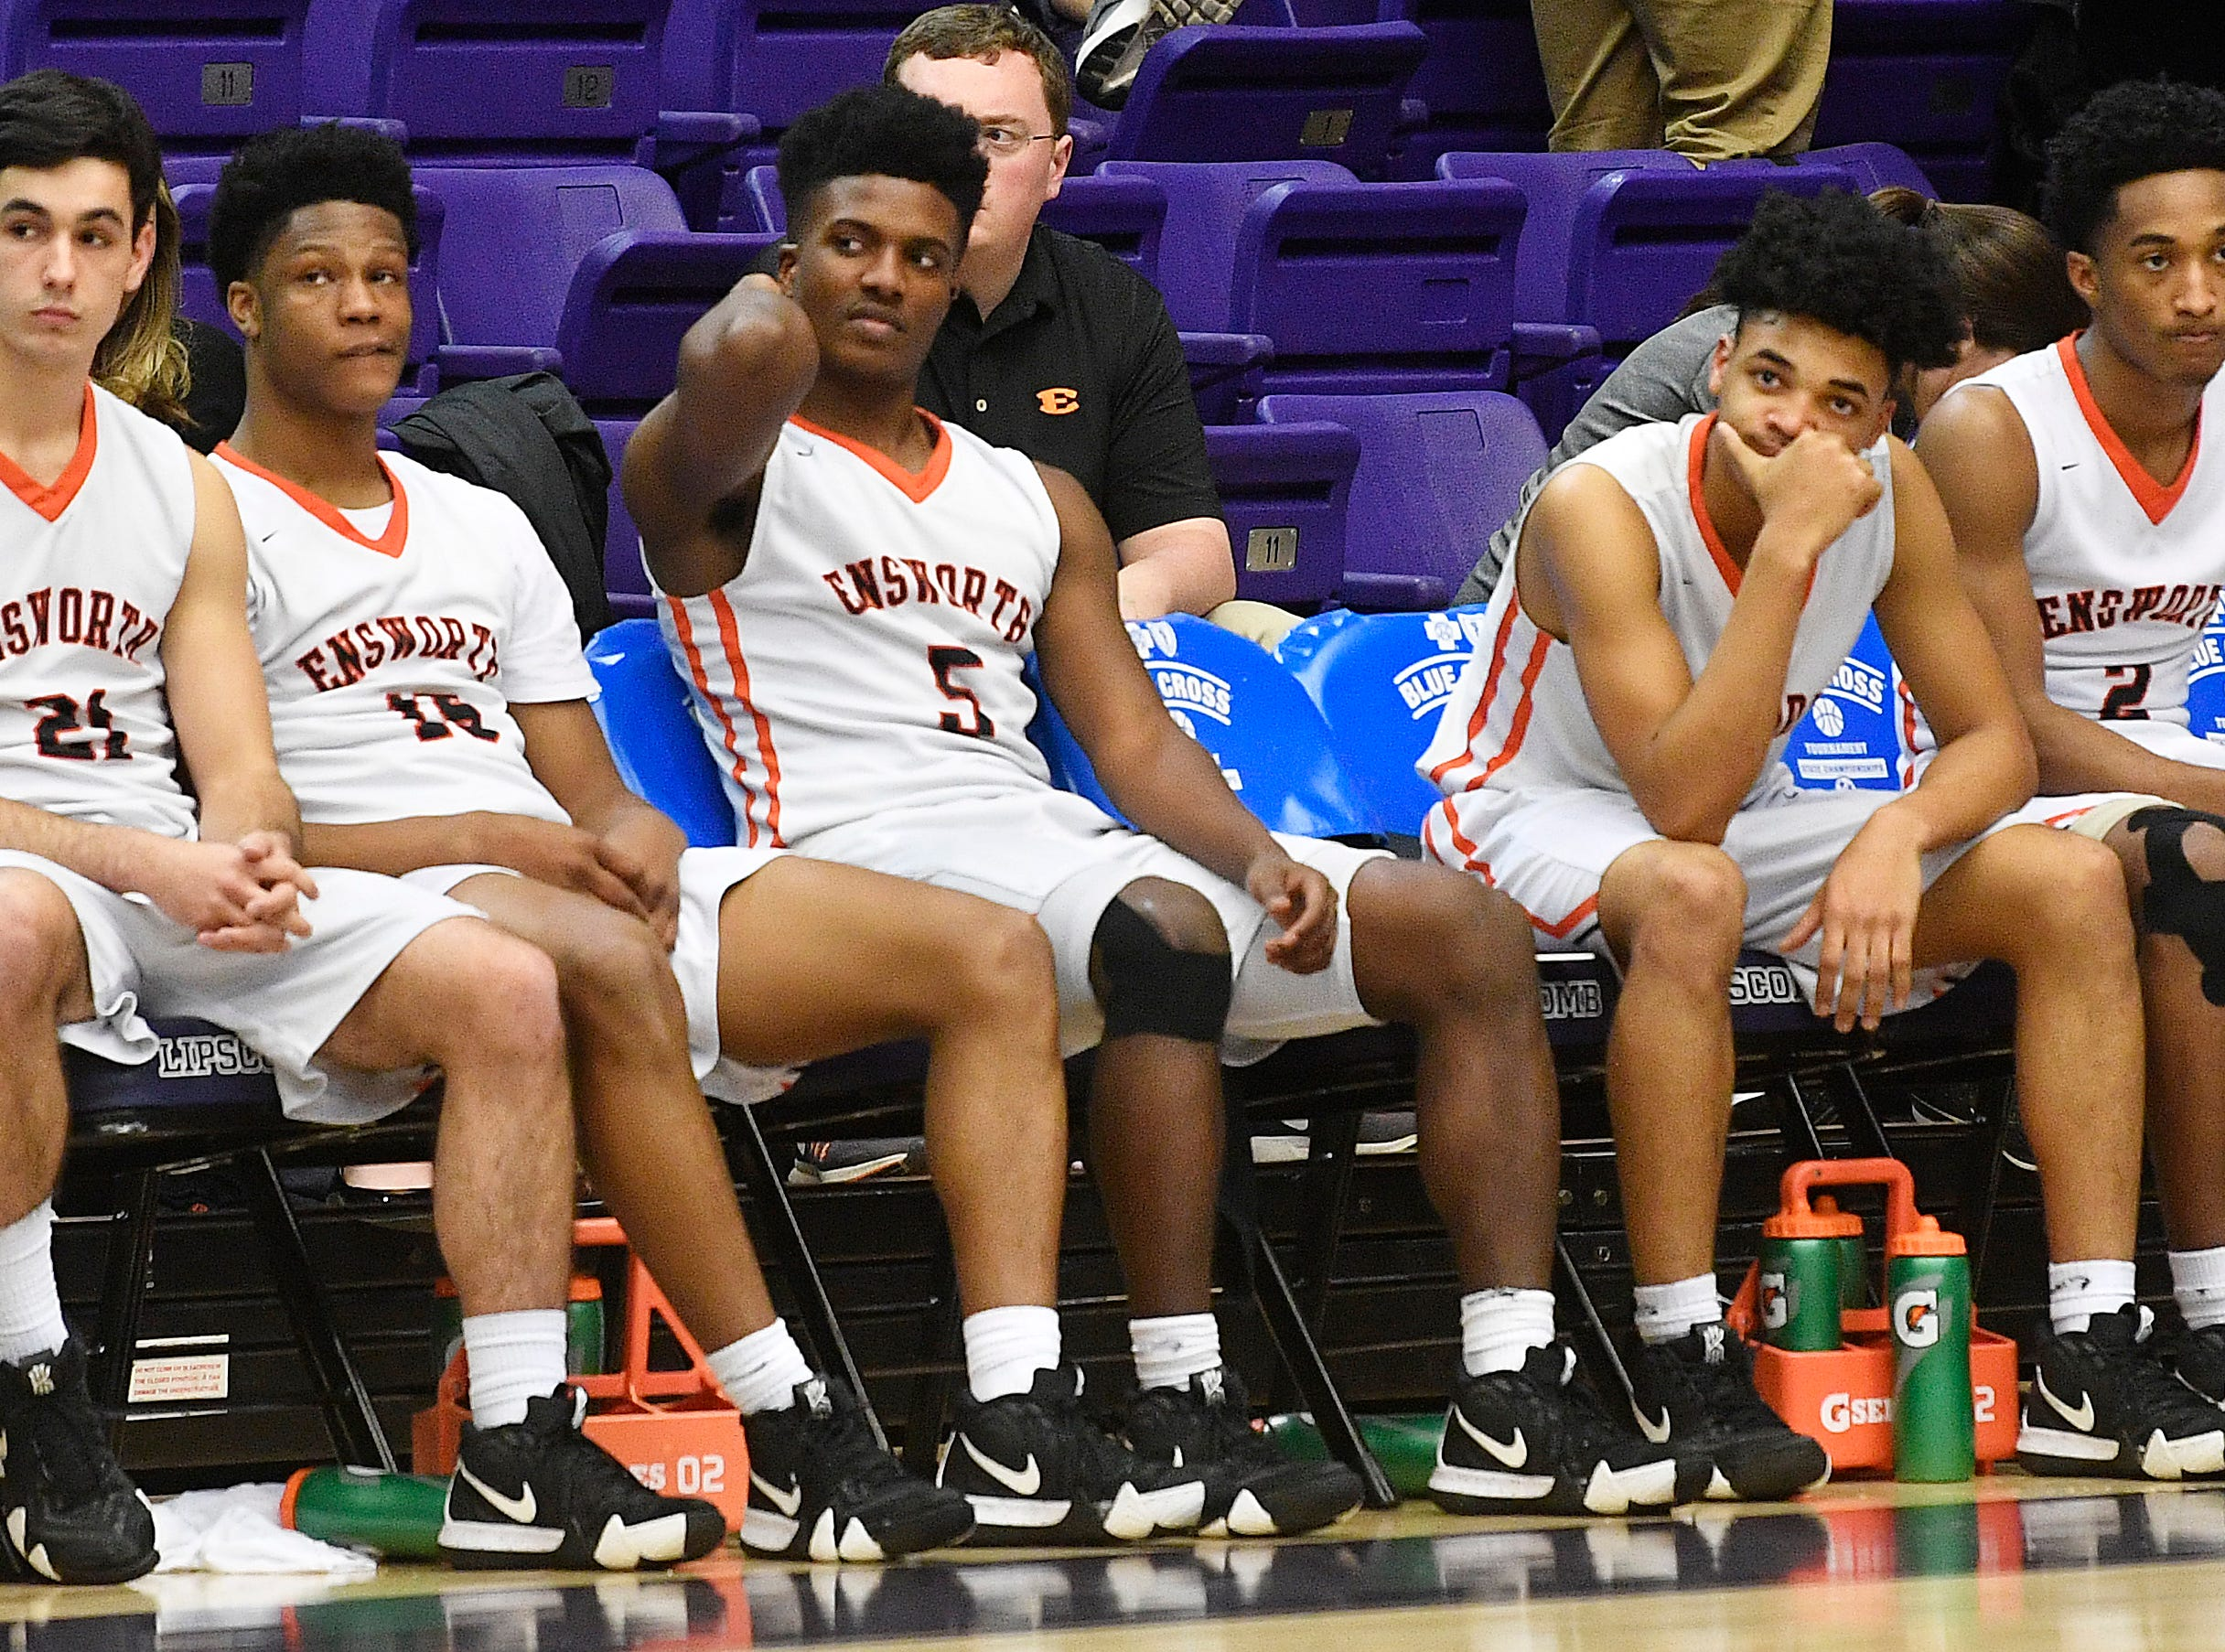 The Ensworth bench is somber after they lost to Briarcrest Christian in the Division II- AA semifinals 59-72 at Allen Arena  Thursday, Feb. 28, 2019, in Nashville, Tenn.